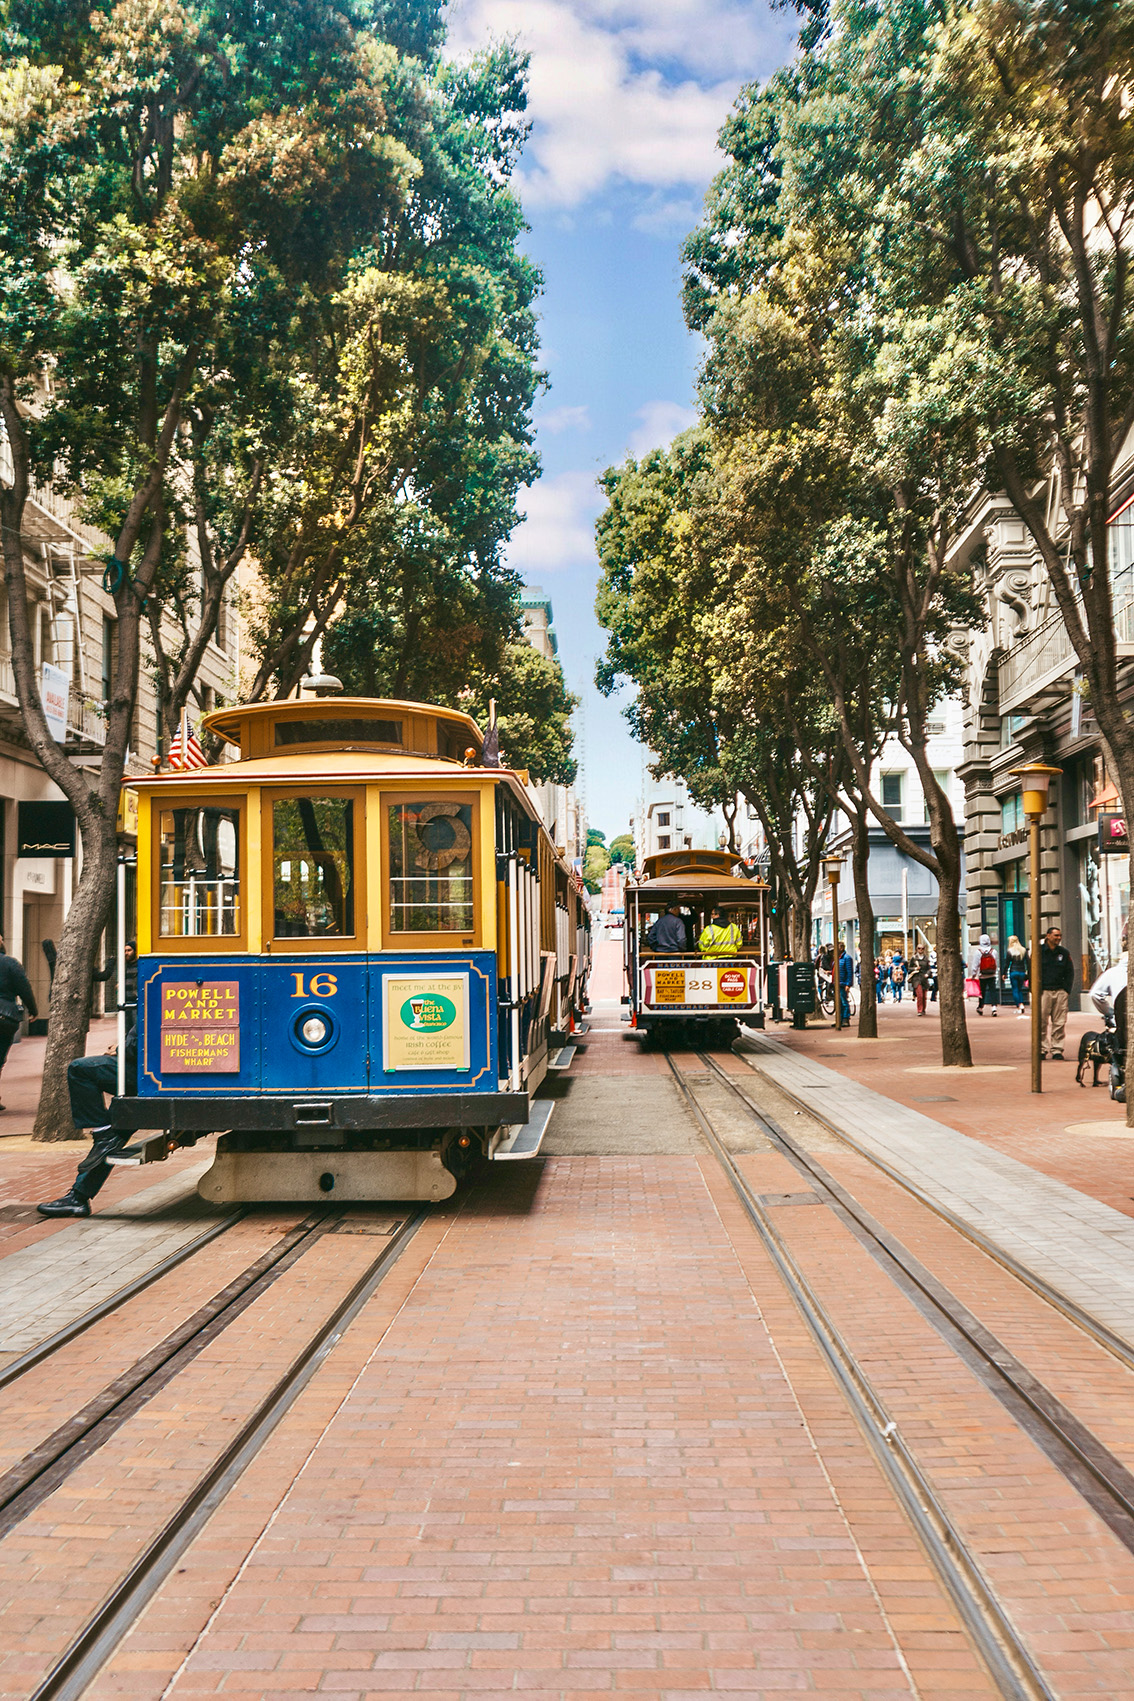 50 10 most instagrammable places in San Francisco you don't have to miss!